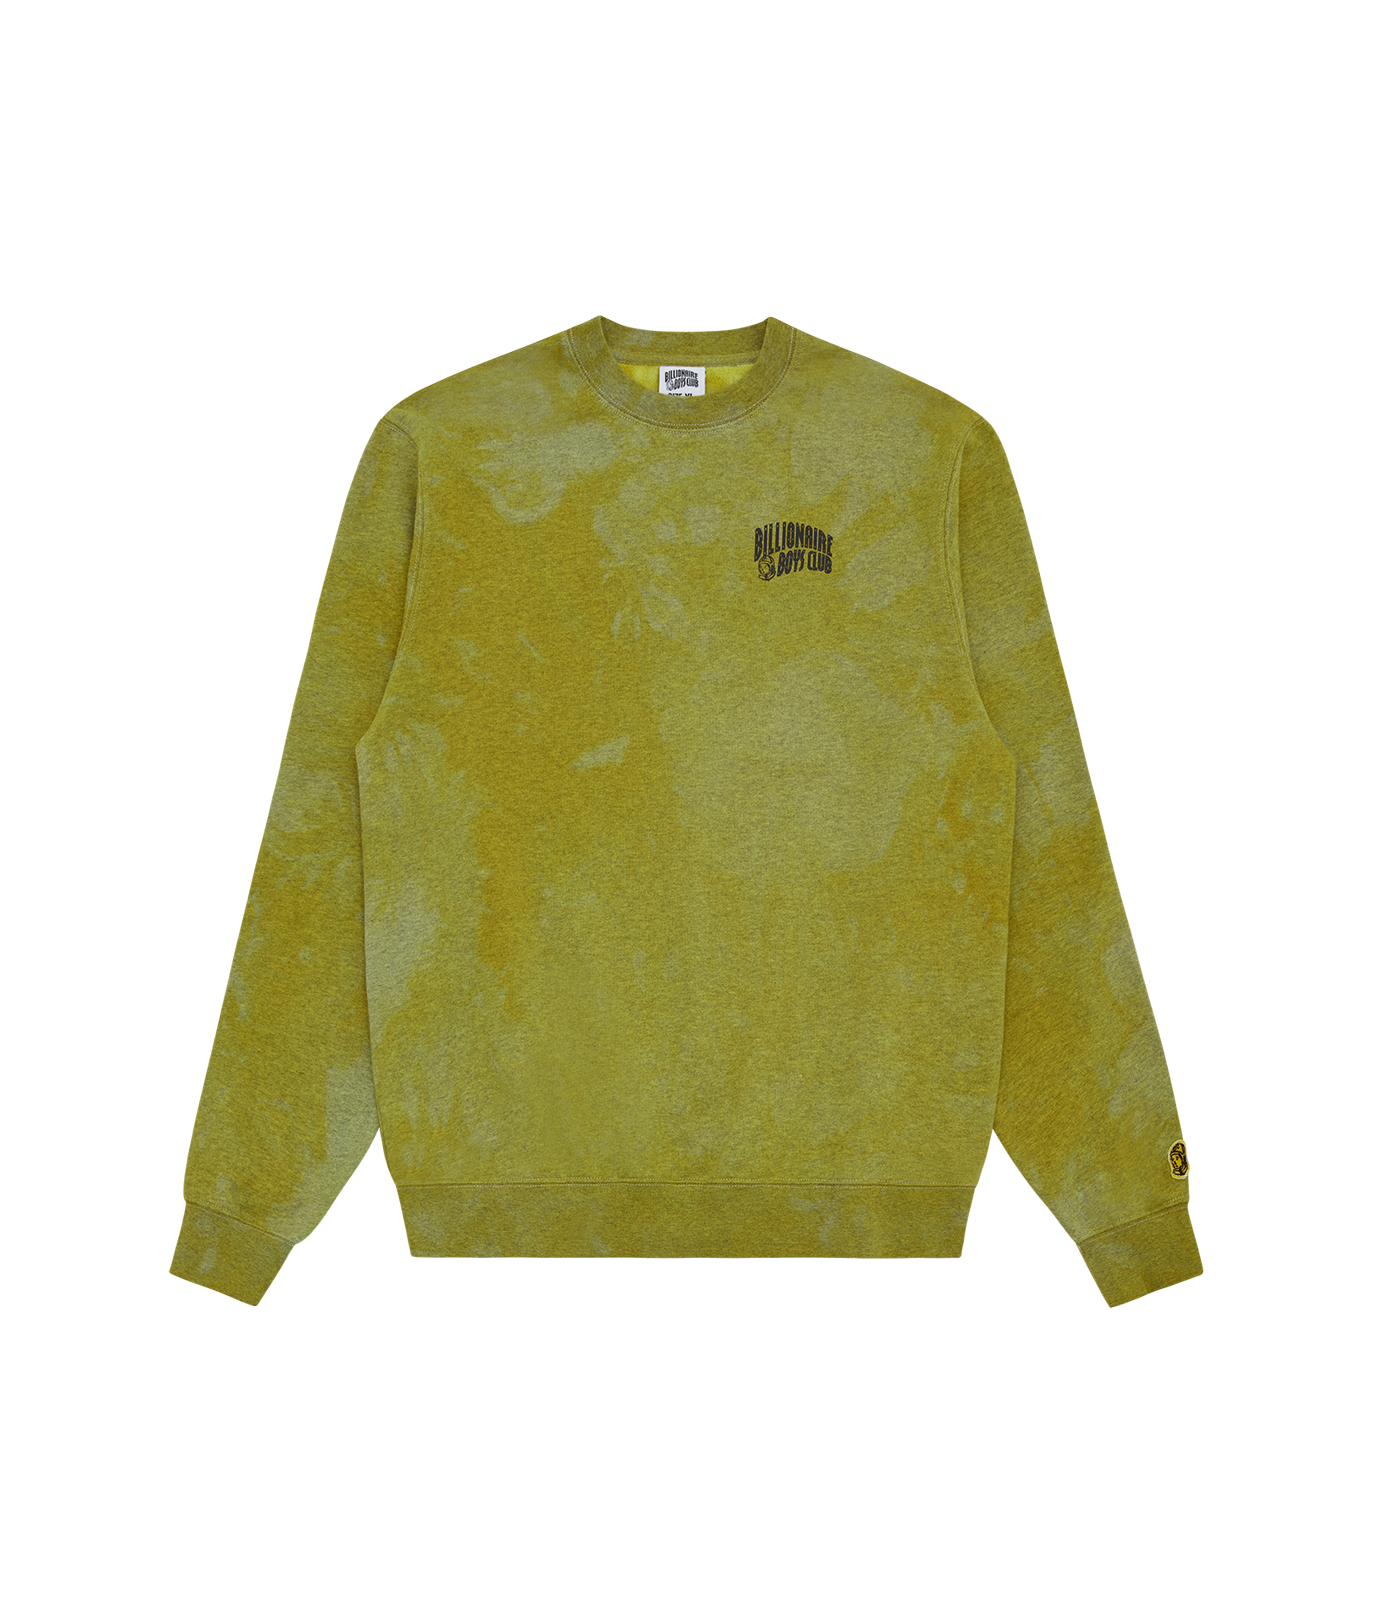 RECYCLED SMALL ARCH LOGO CREWNECK - YELLOW